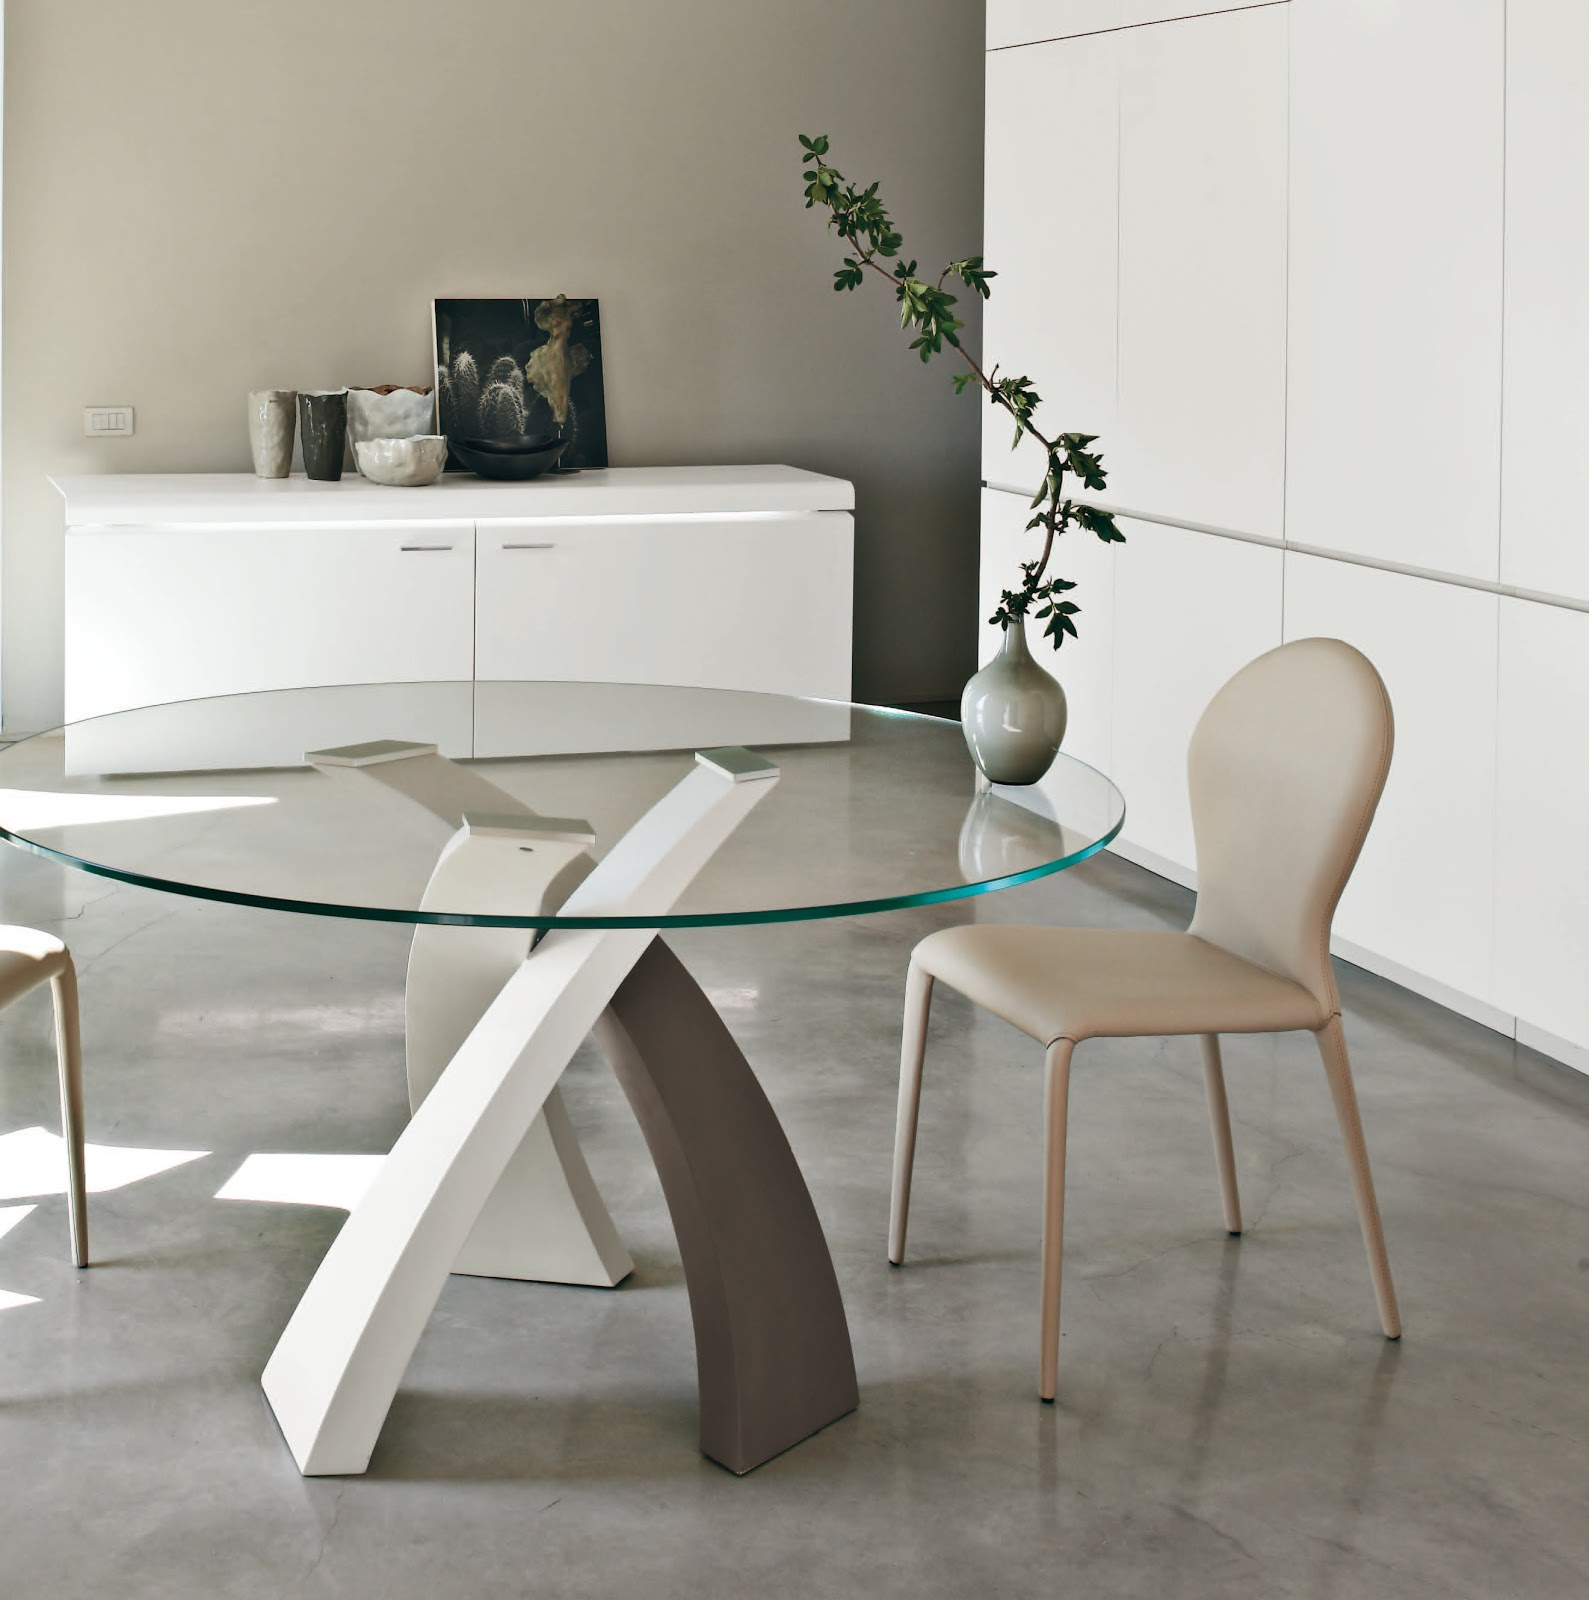 Inspiration Mobilier Design Table Ronde Design